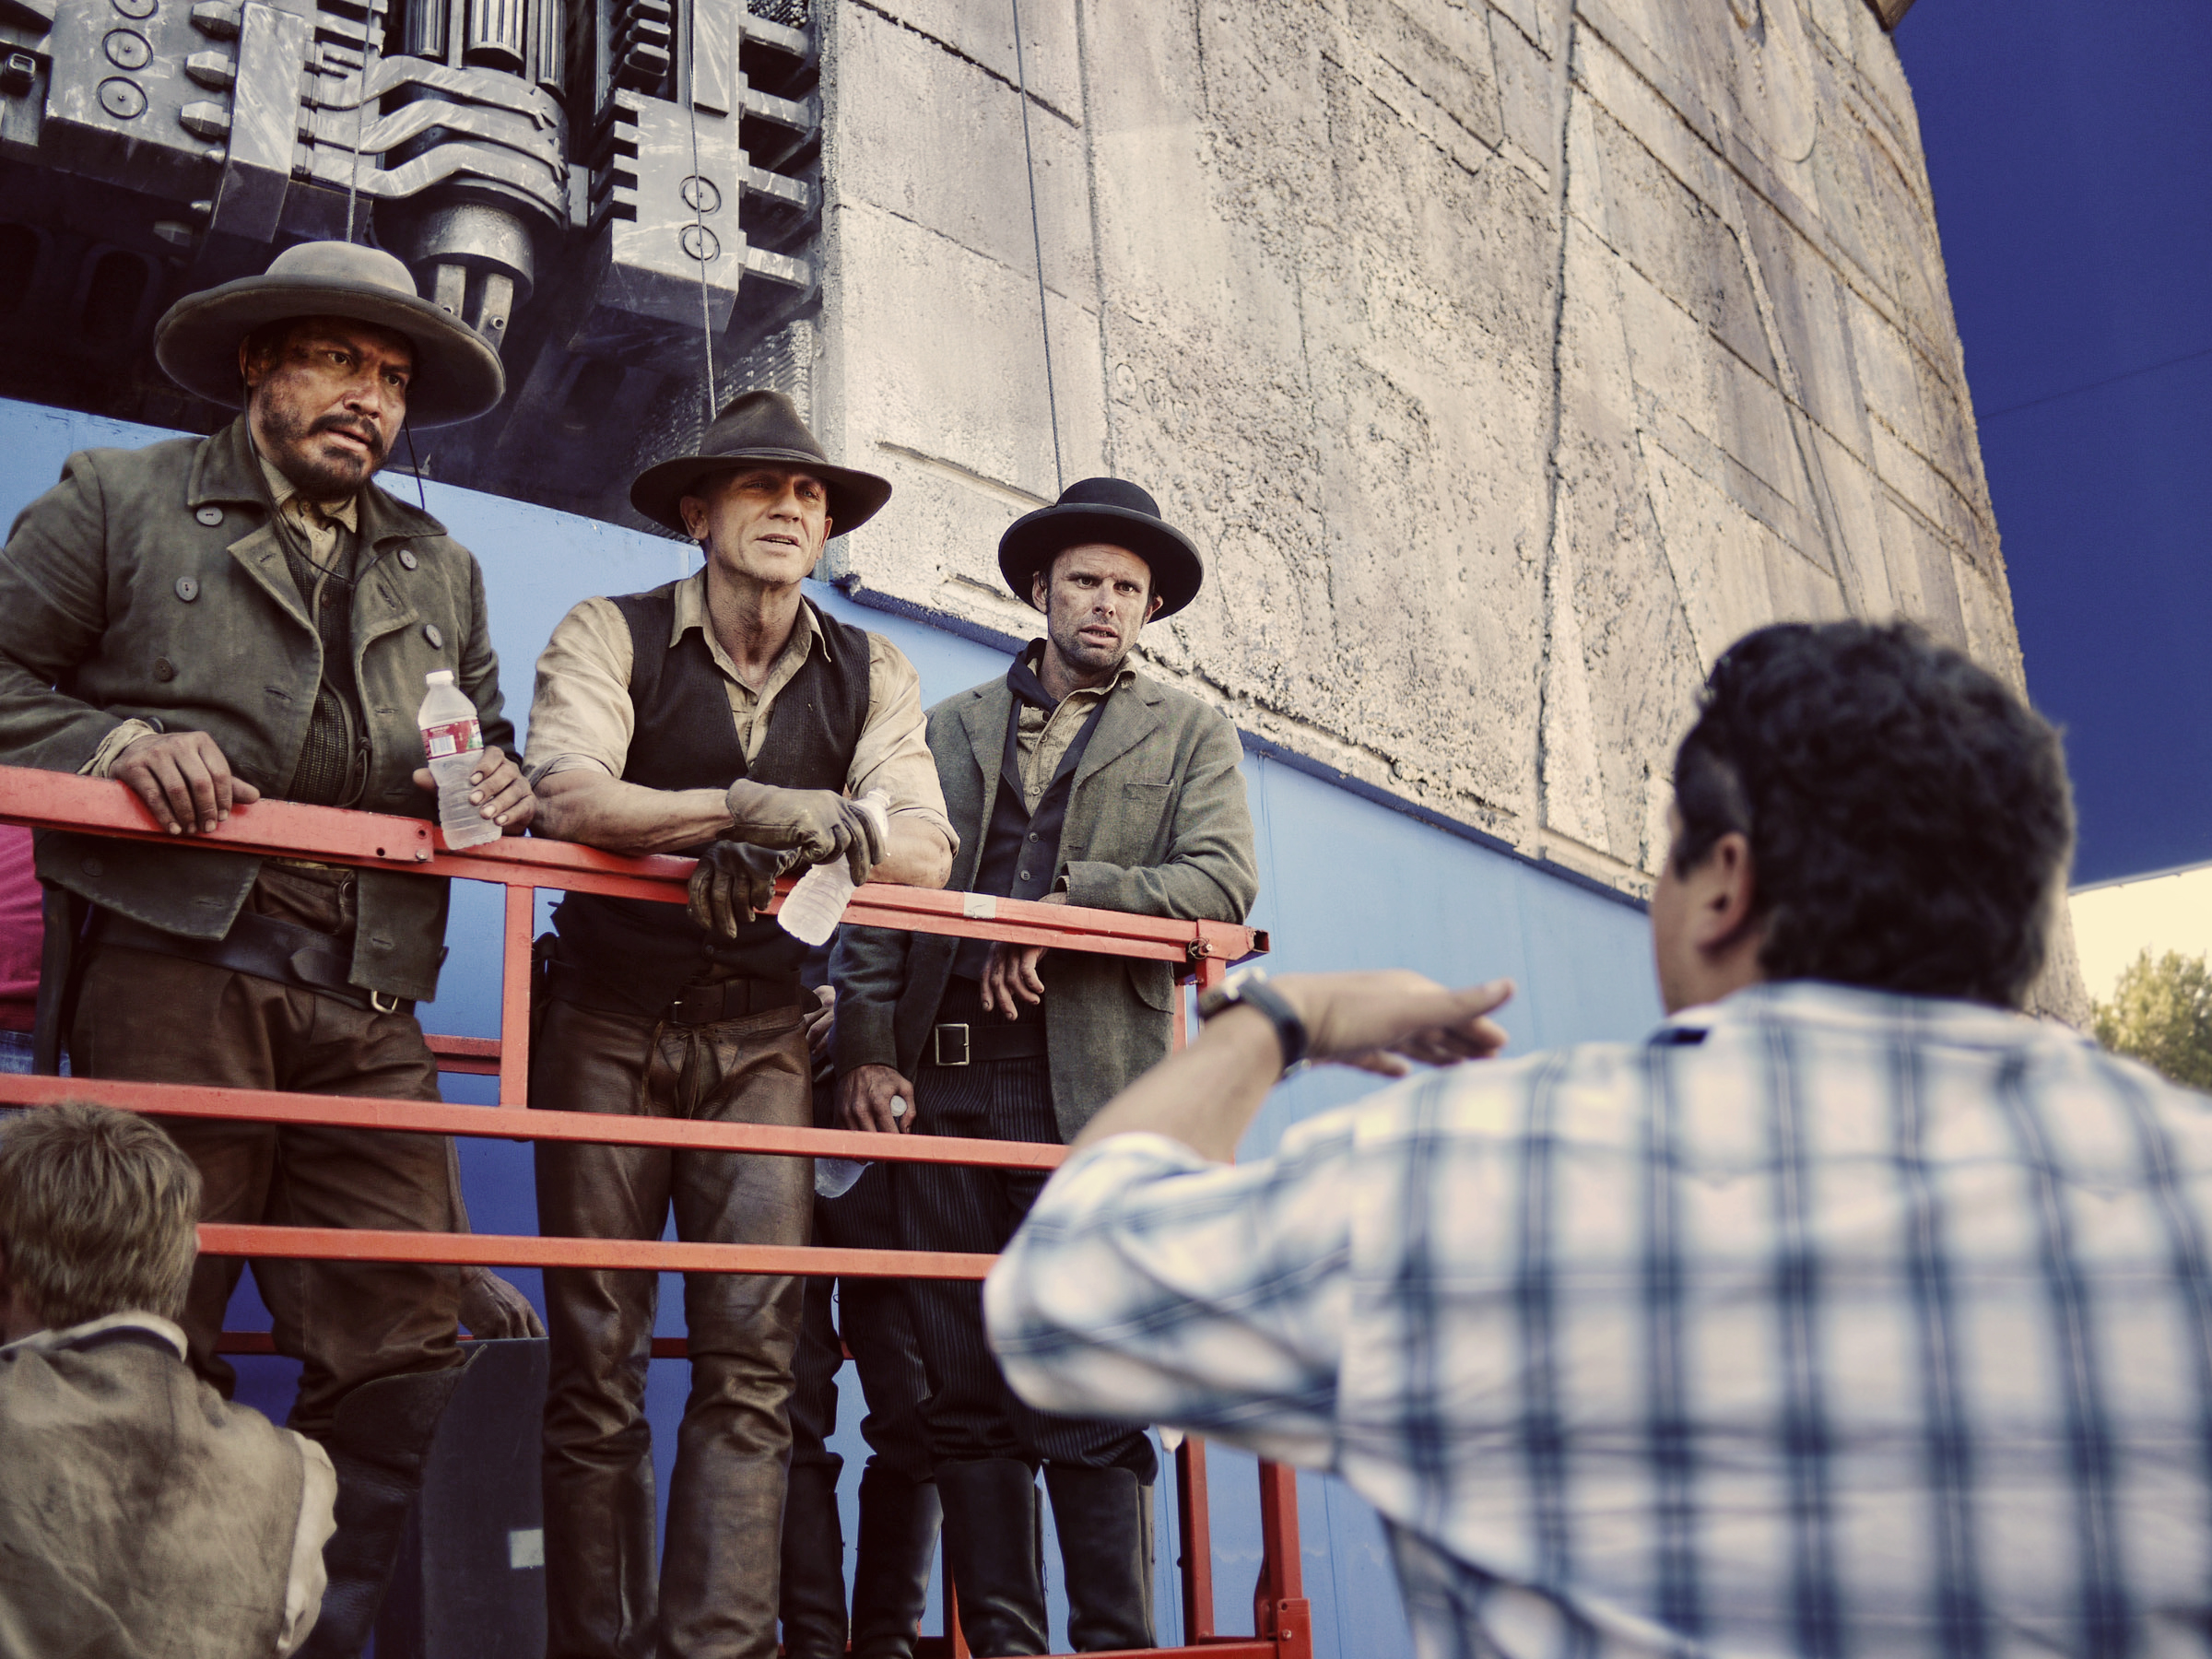 Jon Favreau directs Julio César Cedillo, Daniel Craig and Walton Goggins. They are supported by cables for safety as they will climb the alien ship with the intention of blowing it up.